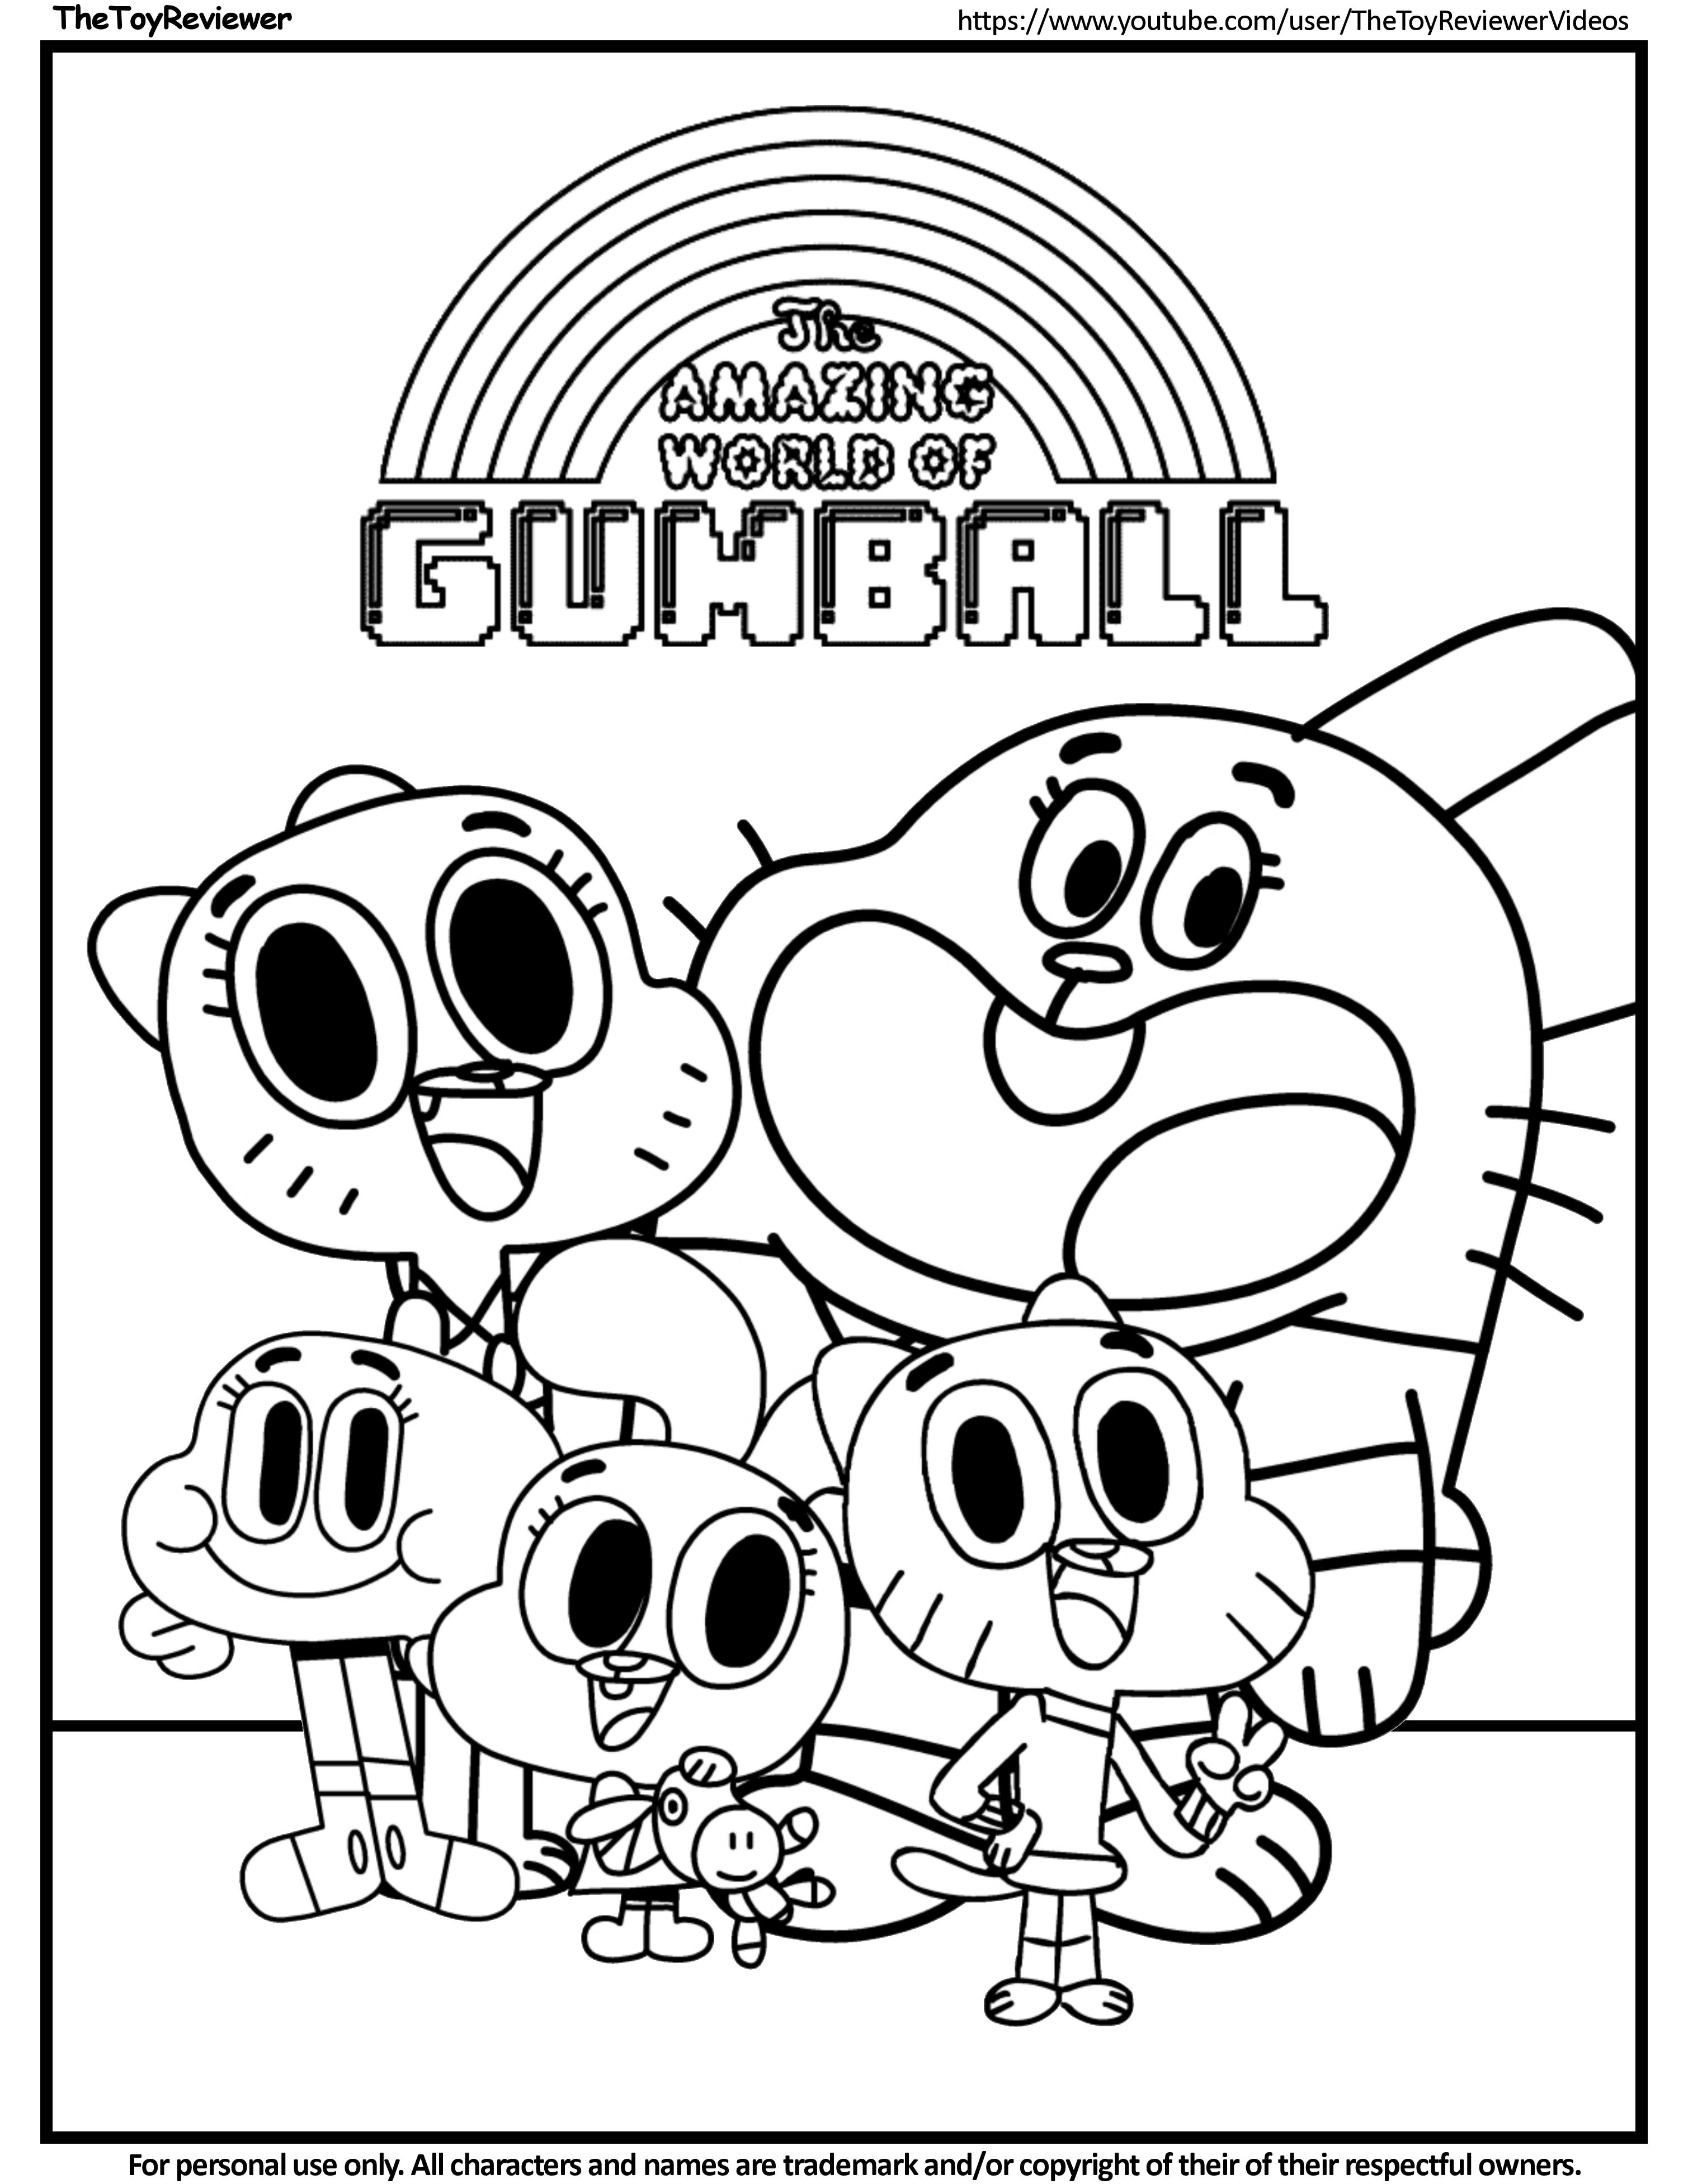 Here Is The Amazing World Of Gumball Coloring Page Click The Picture To See My Coloring V The Amazing World Of Gumball Cartoon Coloring Pages World Of Gumball